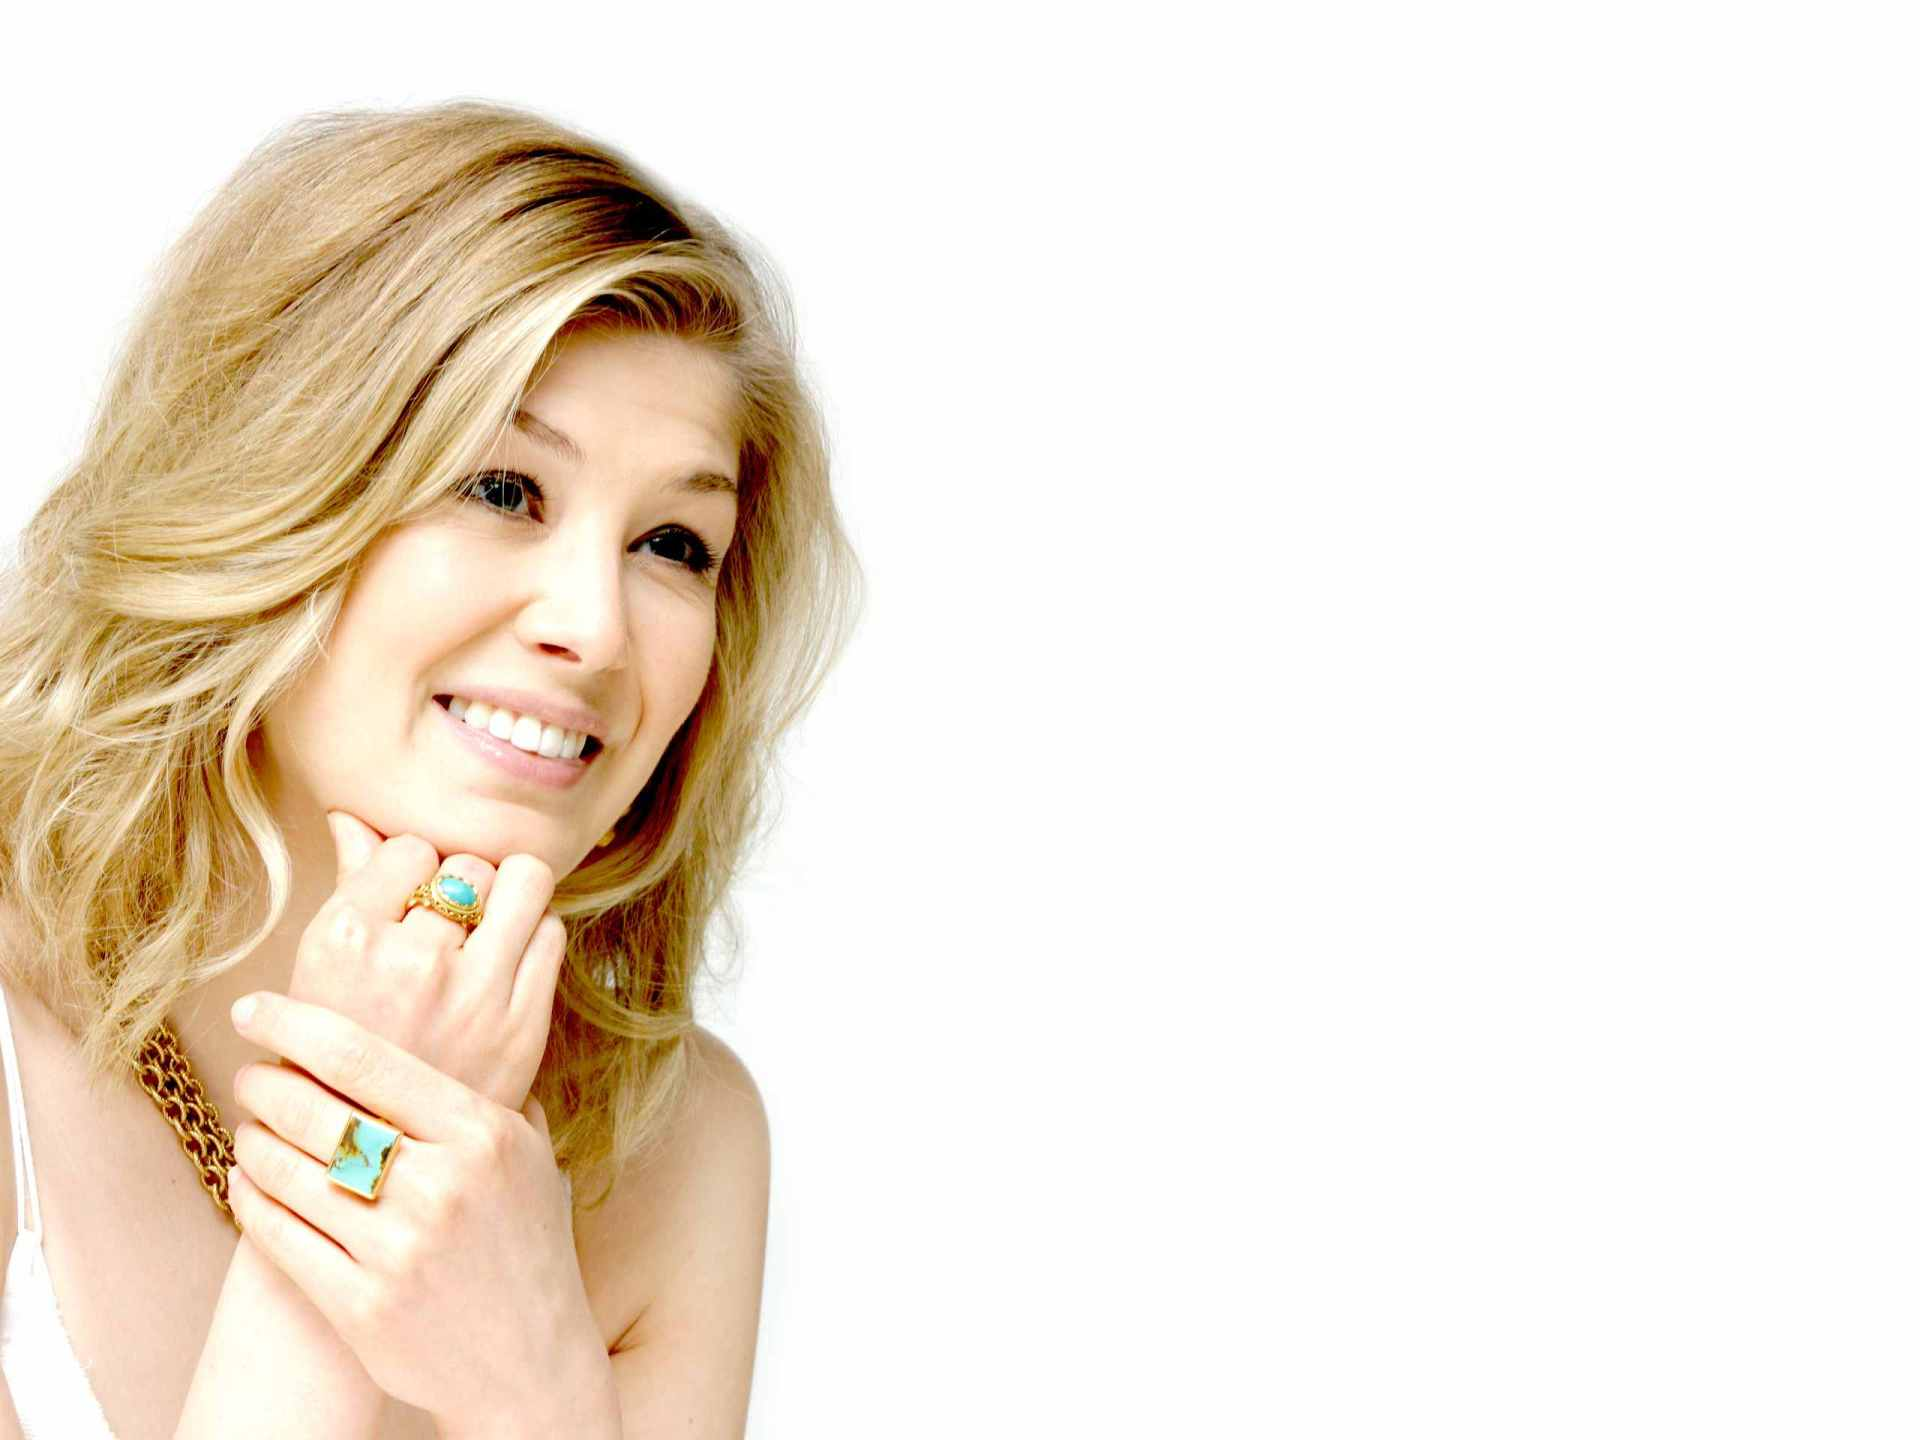 On August 22 2015 By Admin Comments Off Rosamund Pike Wallpapers